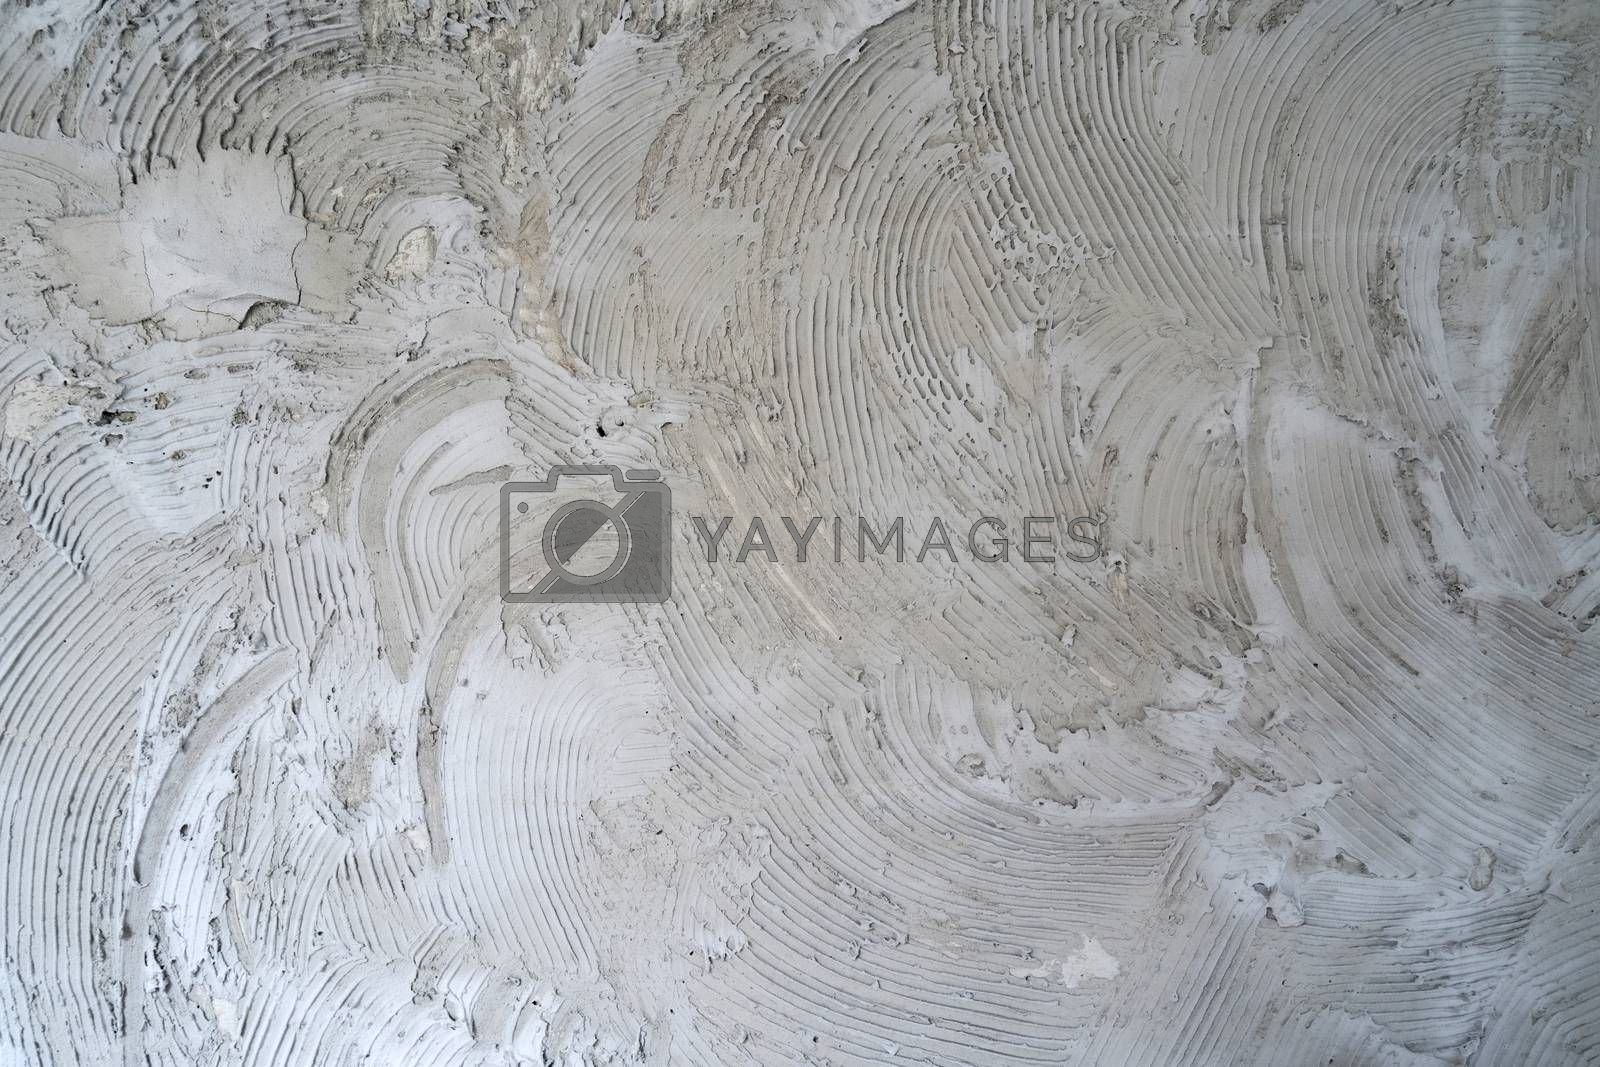 Royalty free image of concrete wall comb surface prepared for tiling by antpkr